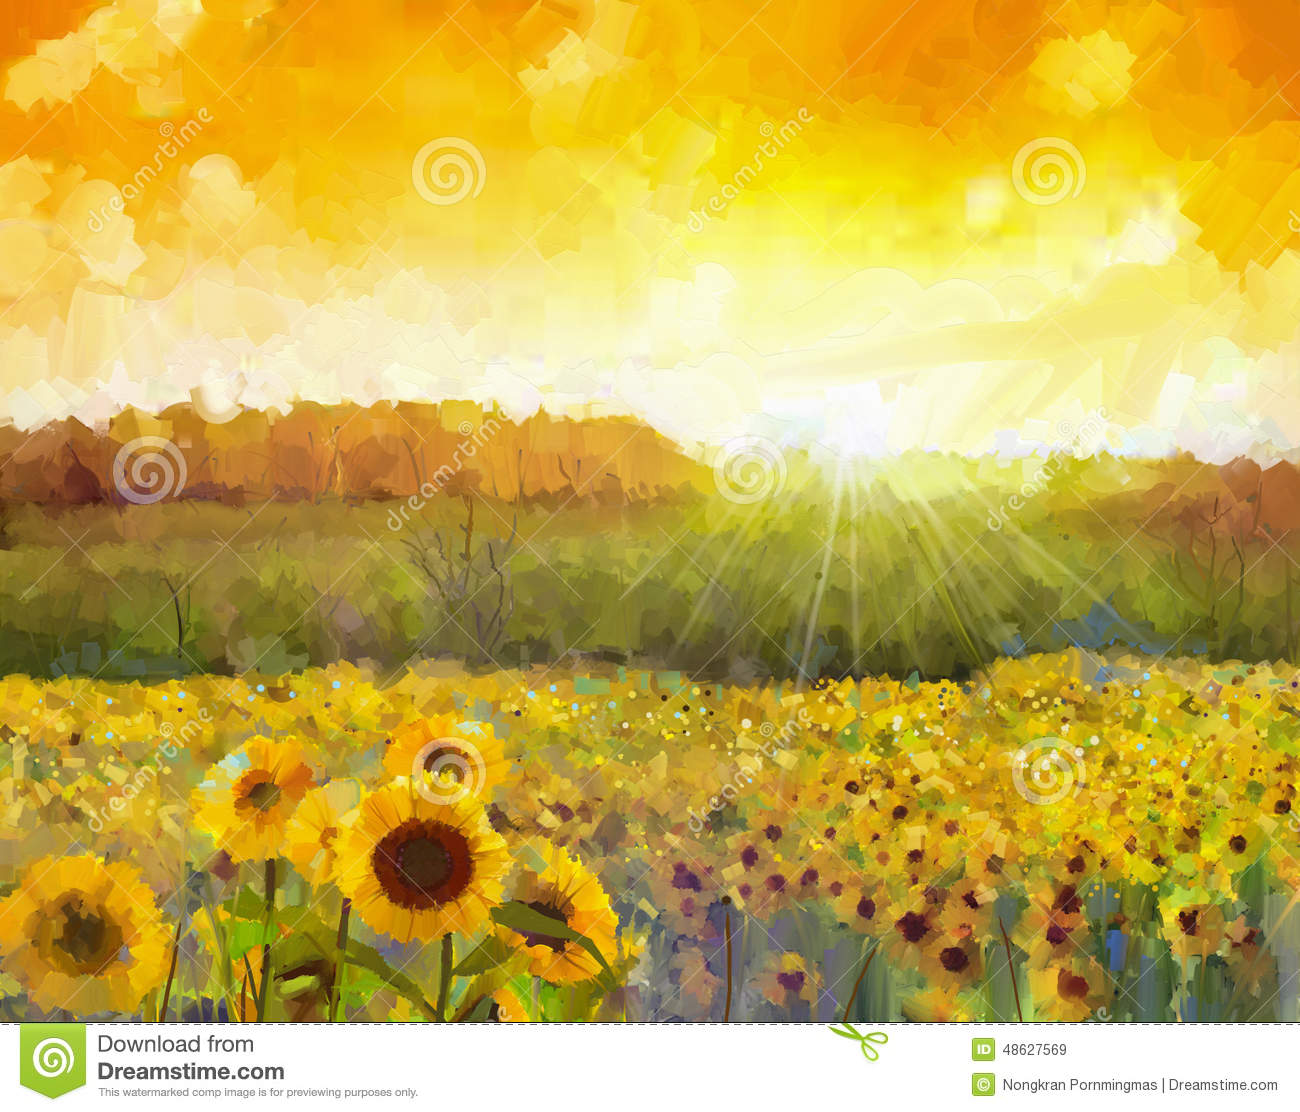 Sunflower Patch Sunflower Flower Blossom Oil Painting Of A Rural Sunset